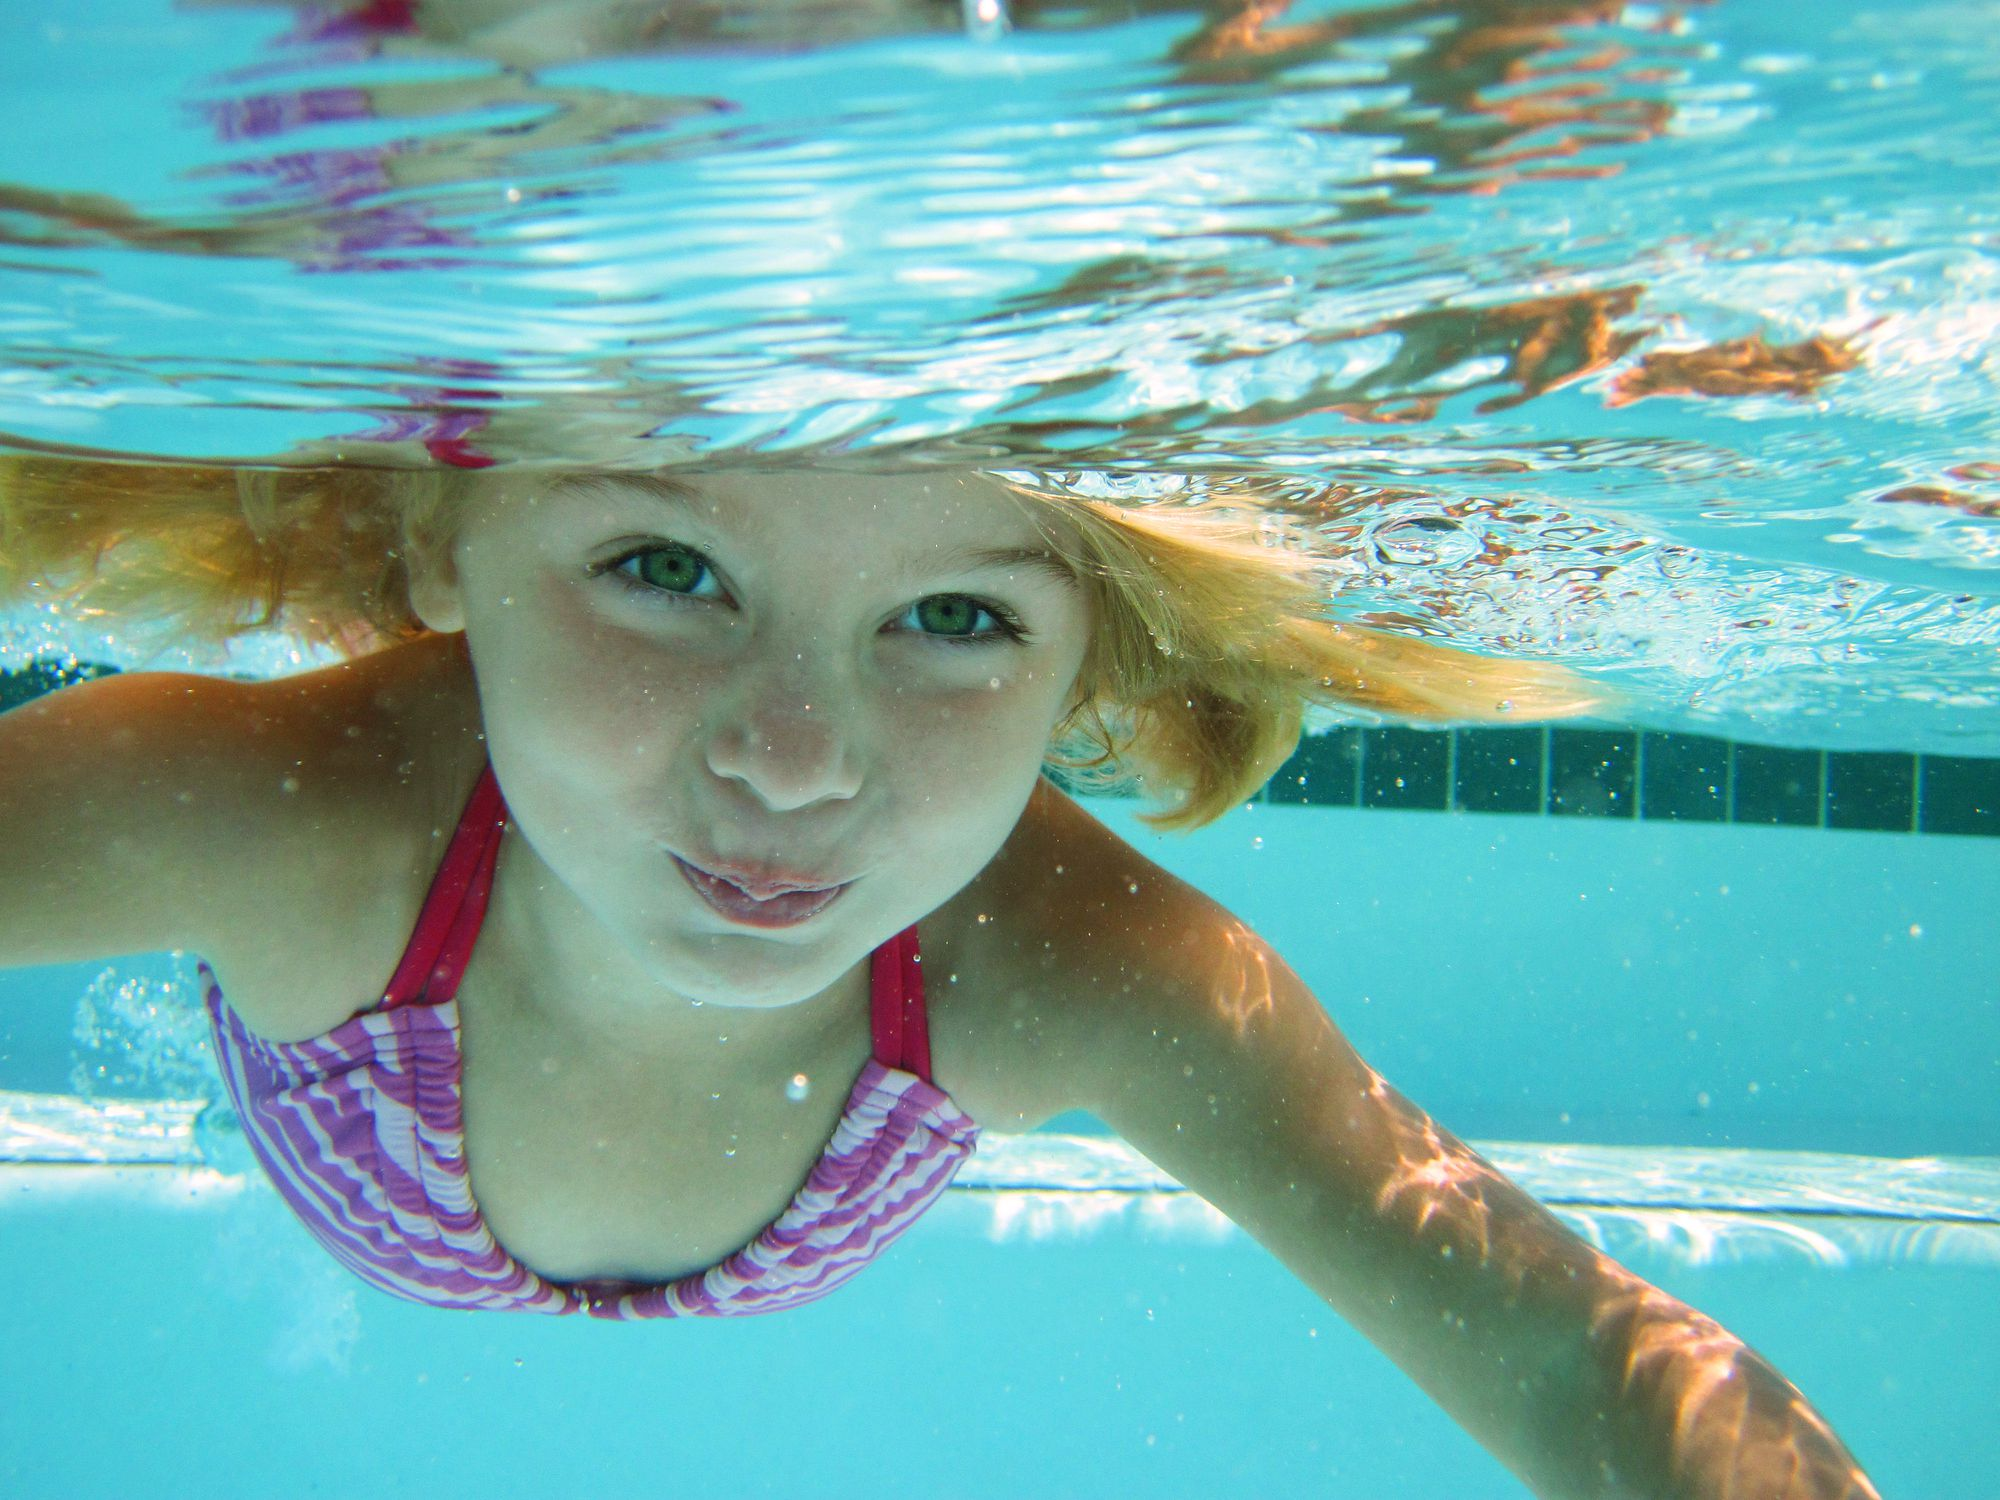 Causes Of Eye Irritation When Swimming